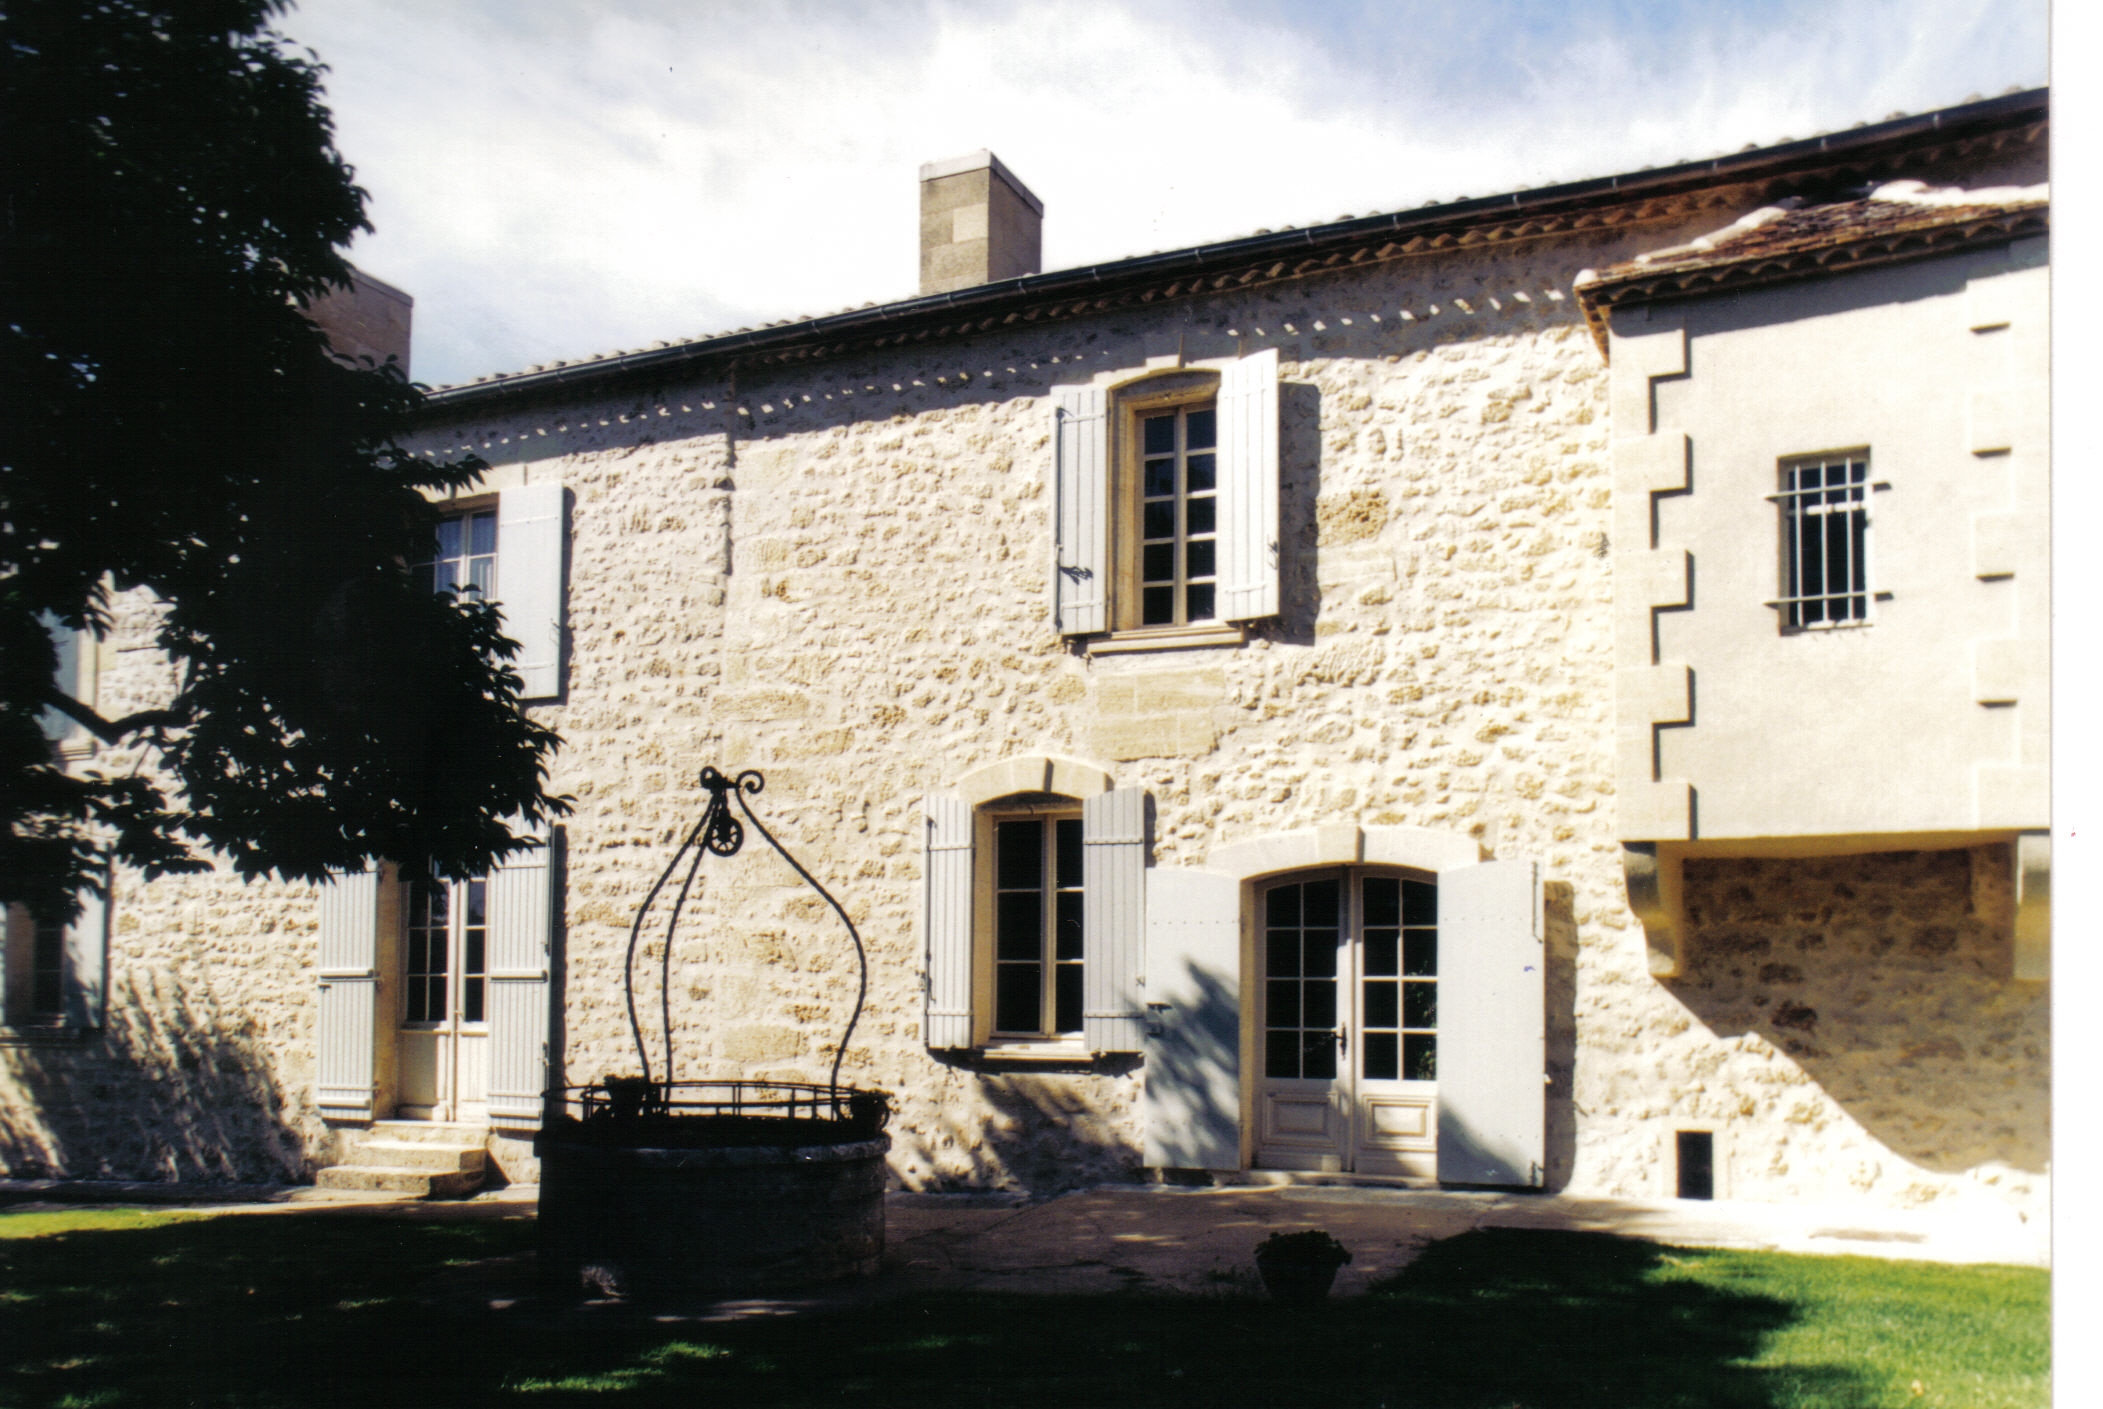 The property - The Genesis of 1800:This family vineyard was born several centuries ago ... 200 years of history, built by the same family whose cradle was this pretty bourgeois house. One of our ancestors, a grunt of the Napoleonic army, received a dowry by marrying the same day as the Corsican emperor. The story goes that this is how he got his first ares of vines.